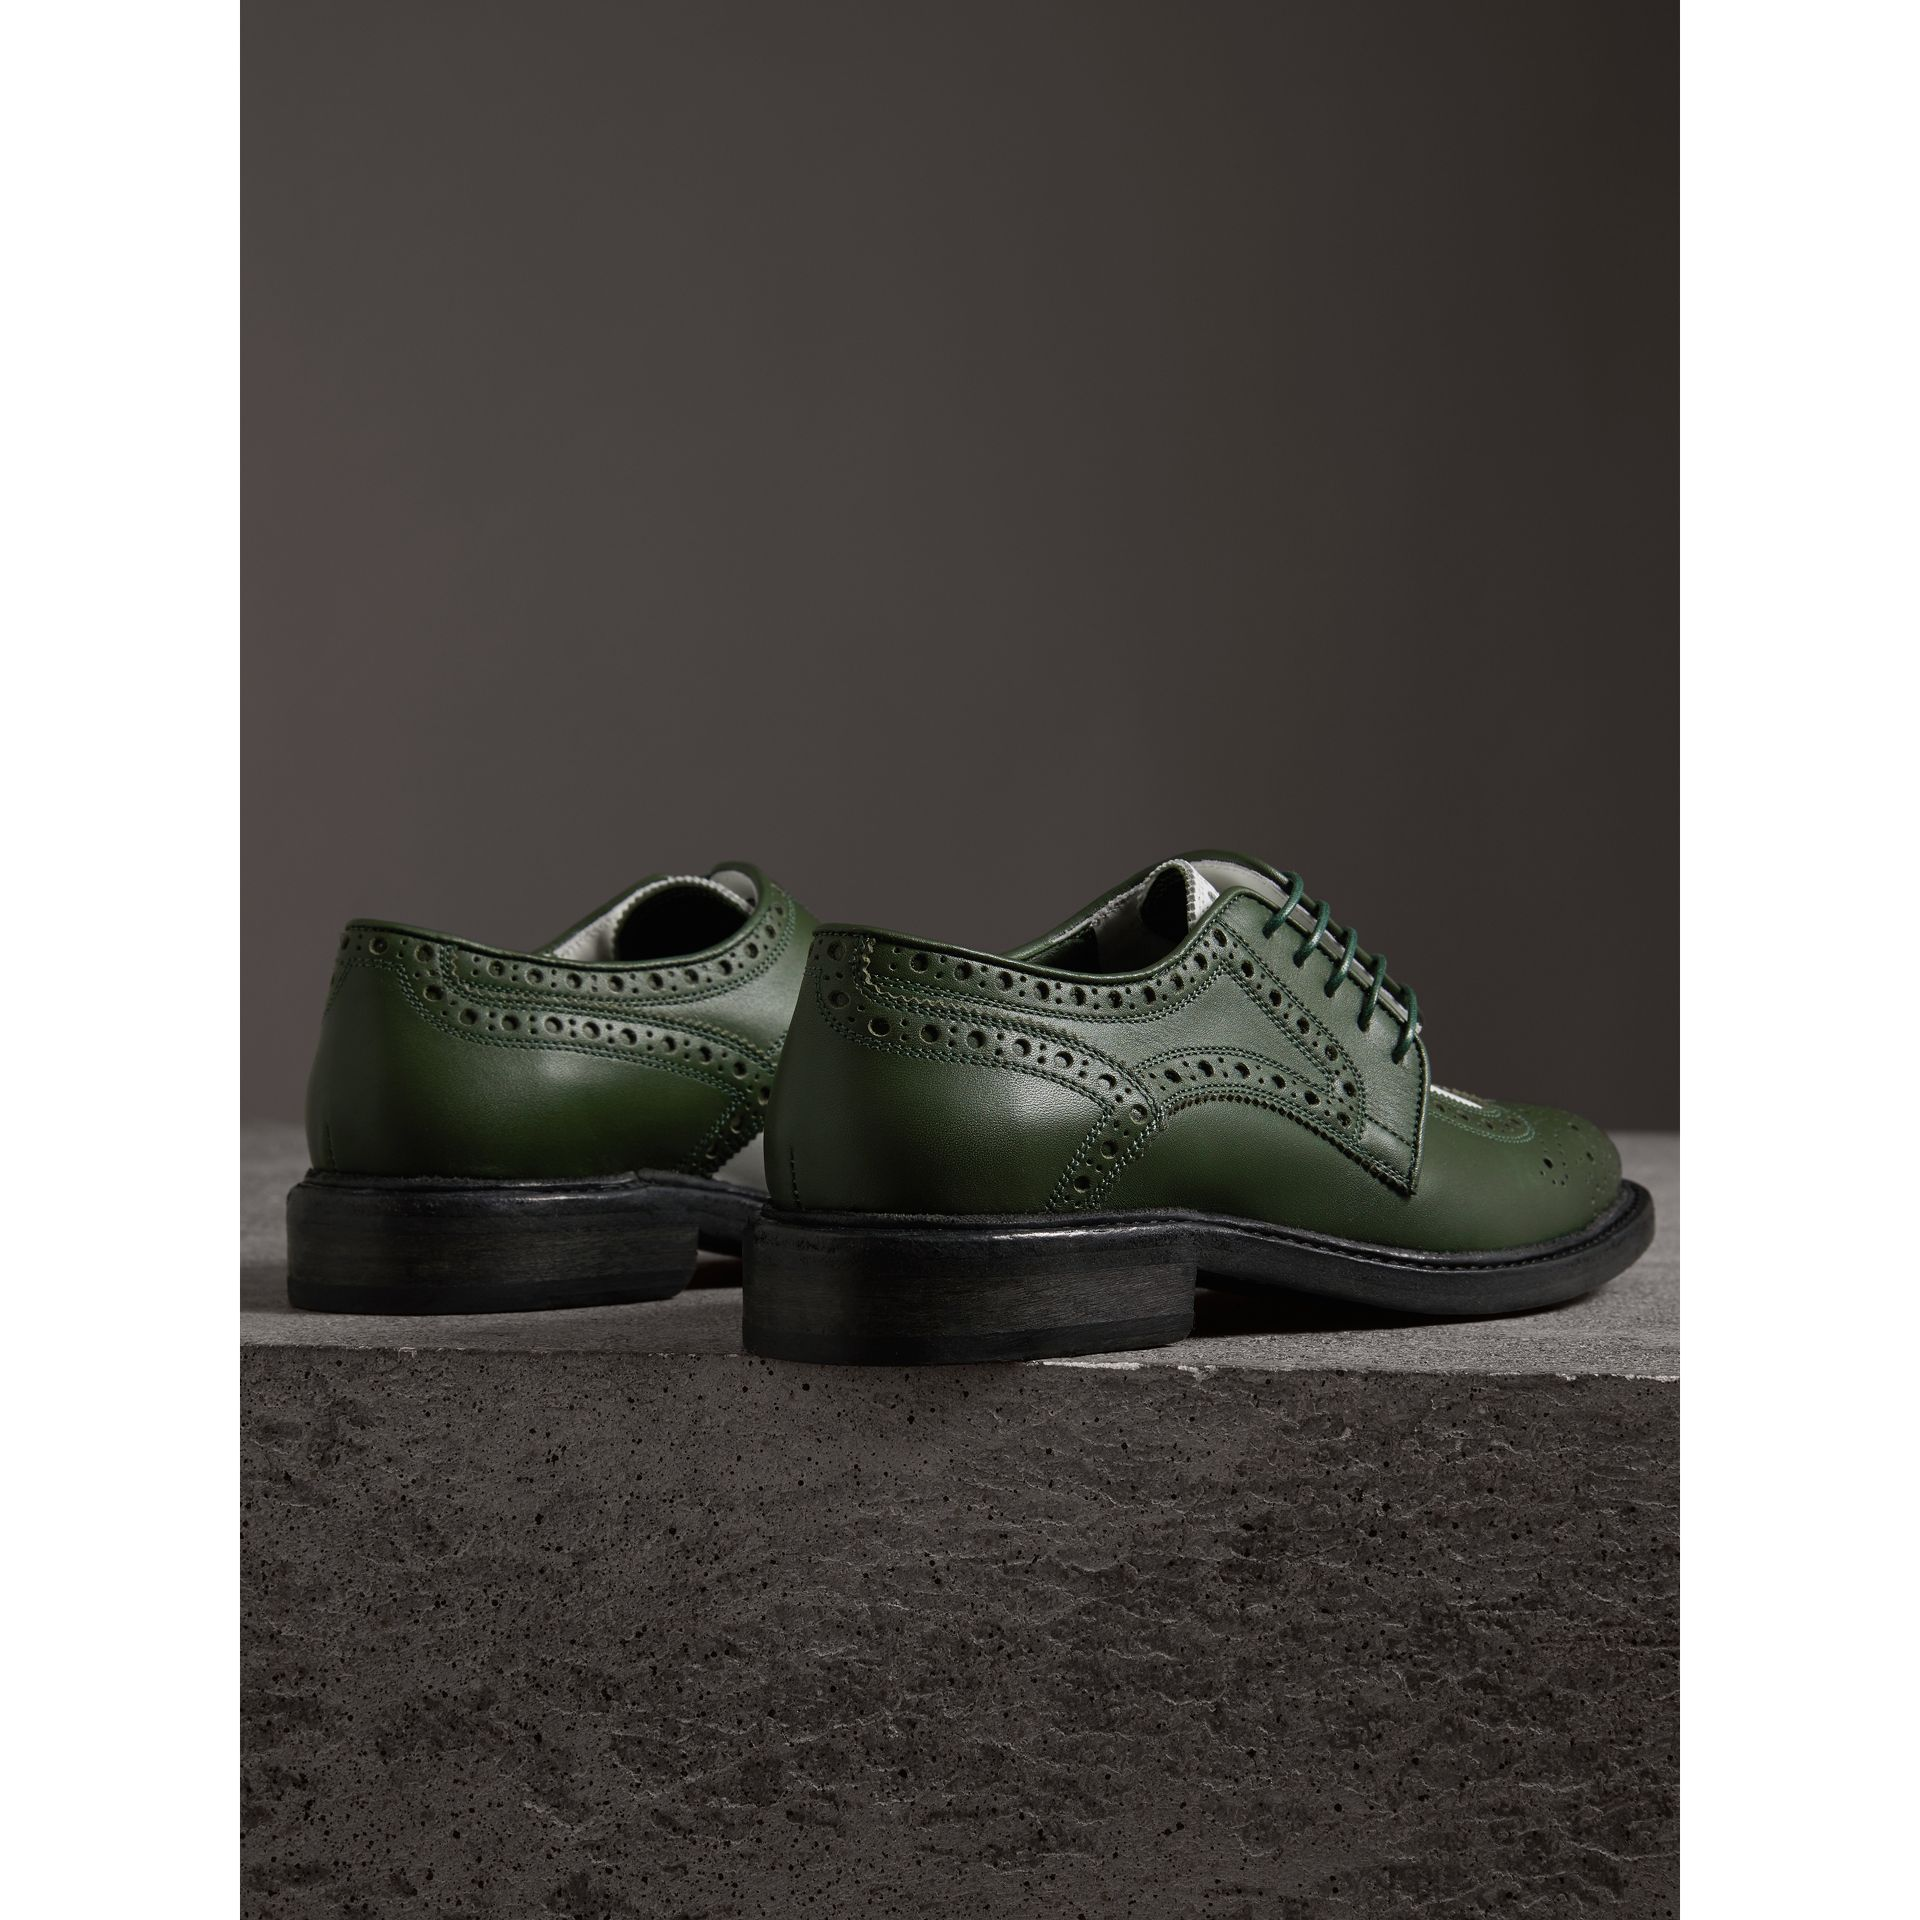 Two-tone Asymmetric Closure Leather Brogues in Dark Green - Women | Burberry United States - gallery image 2